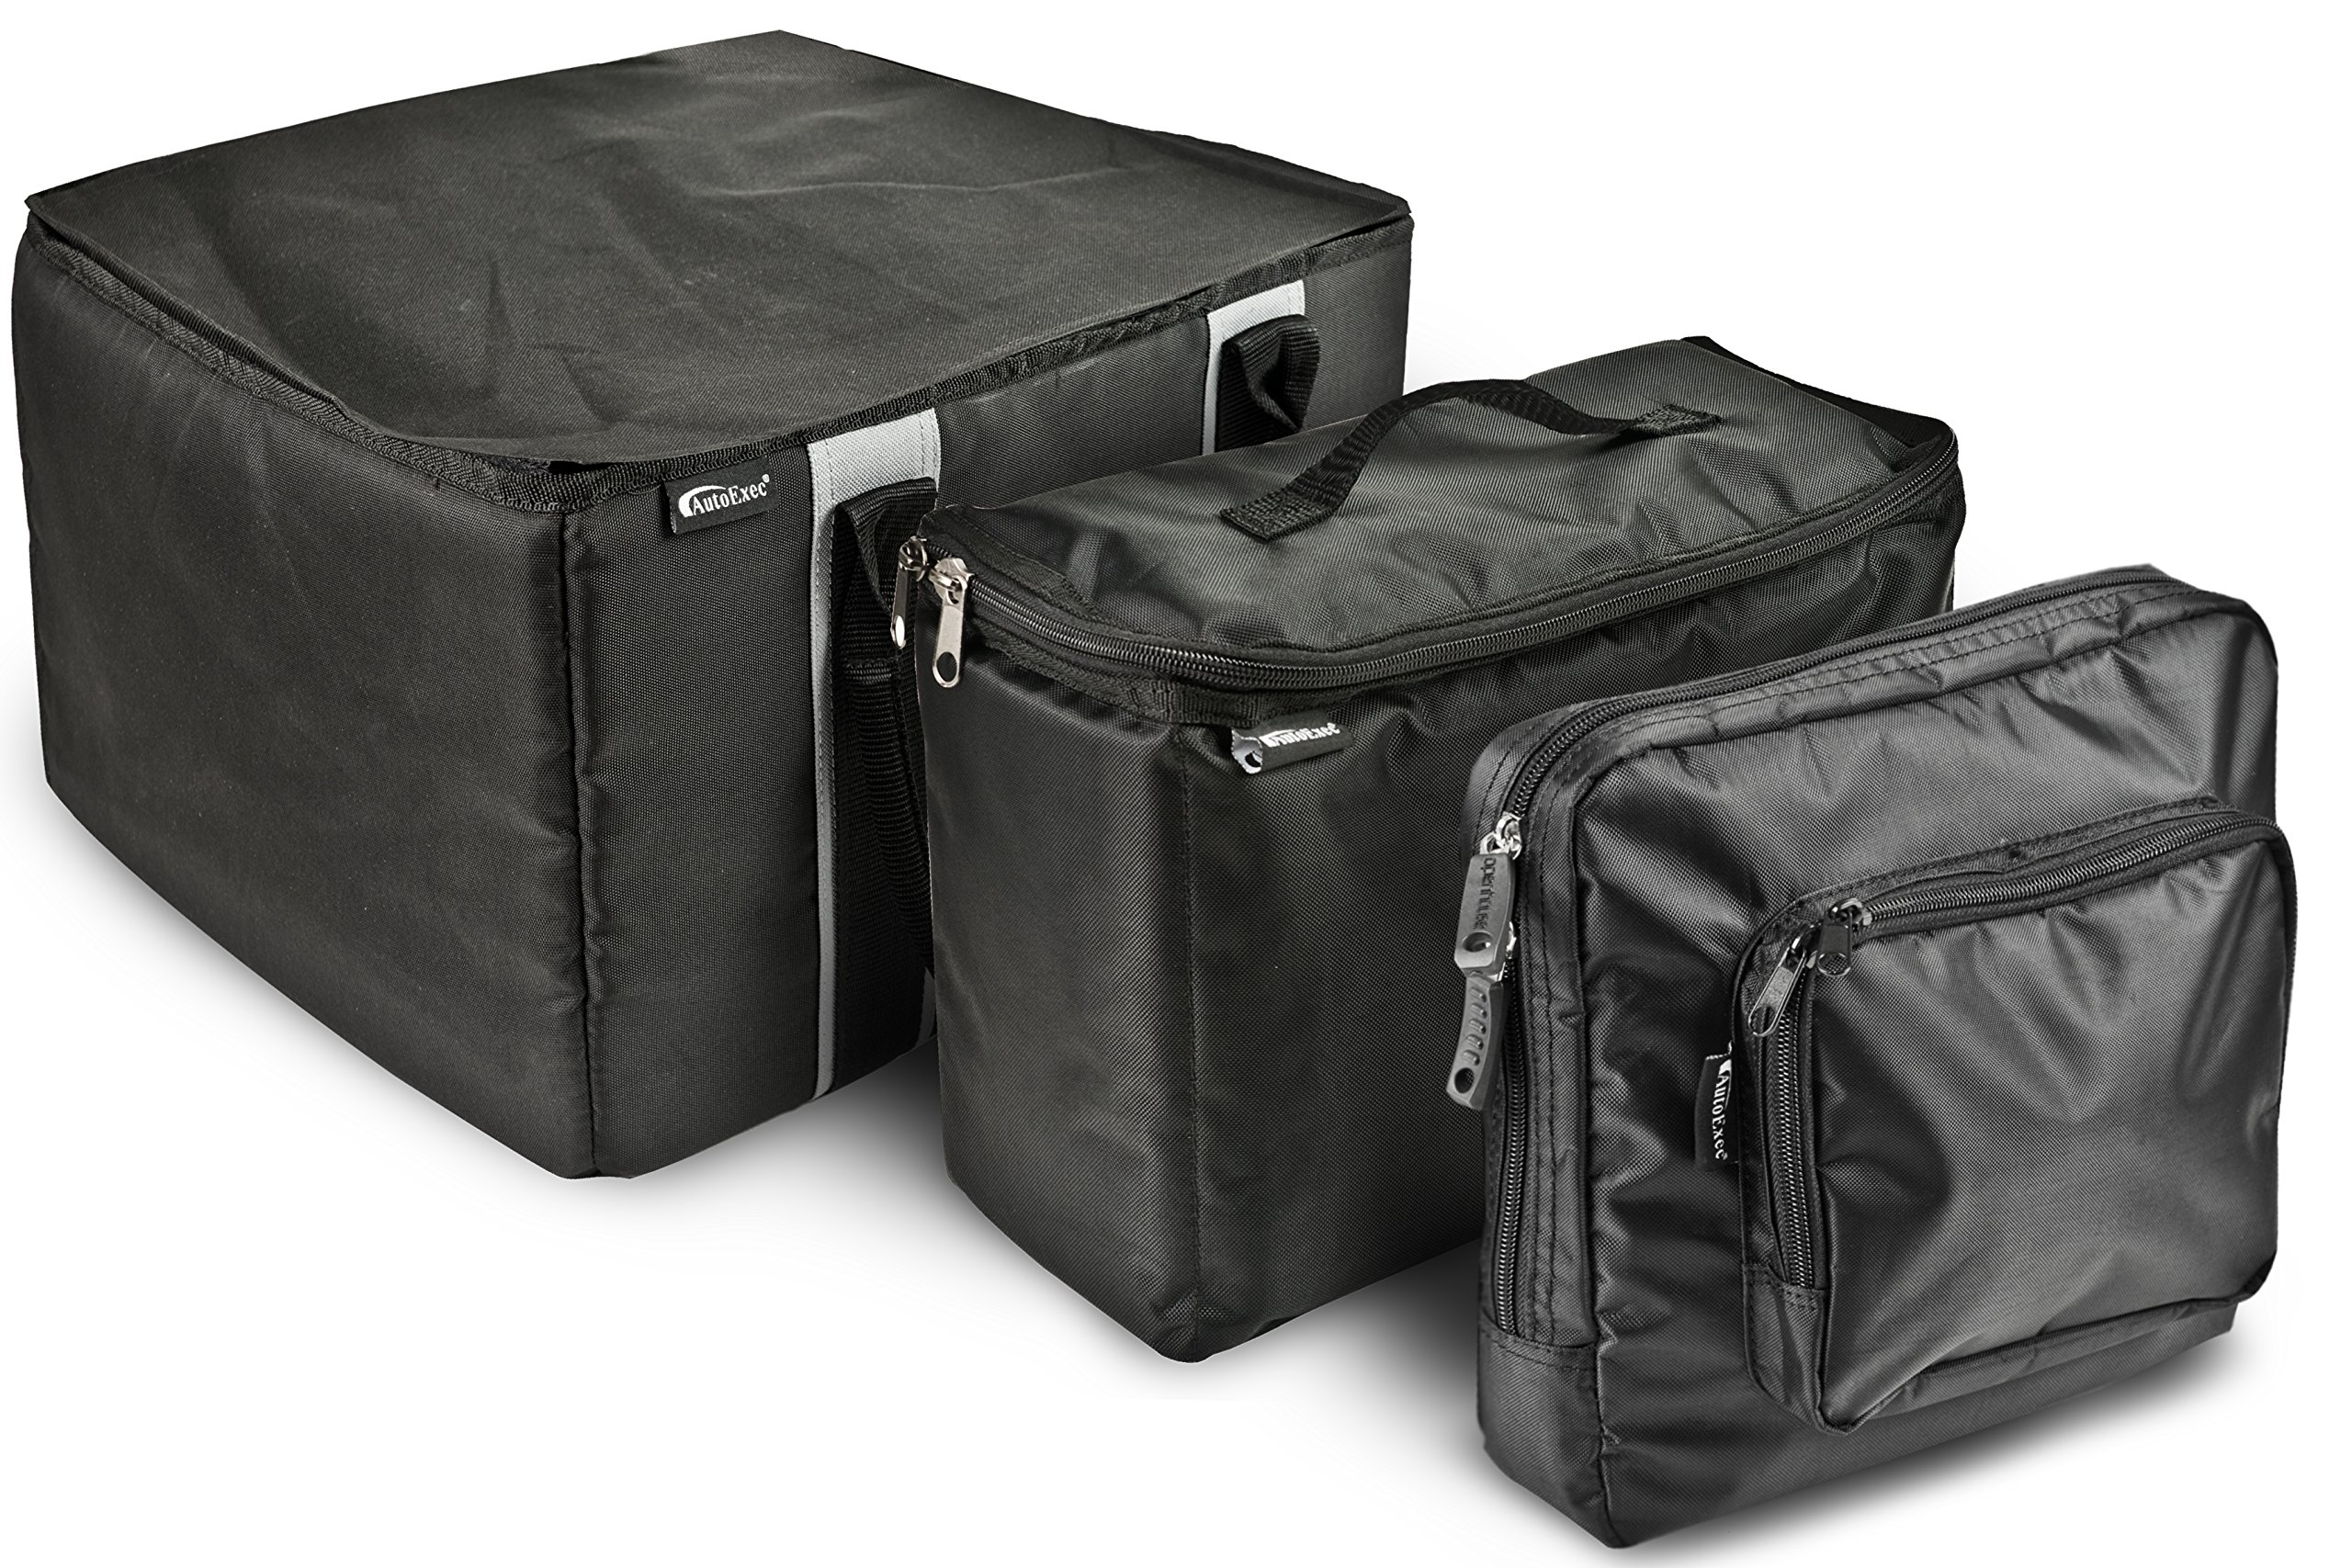 AutoExec AETote-09 Black/Grey File Tote with One Cooler and One Tablet Case